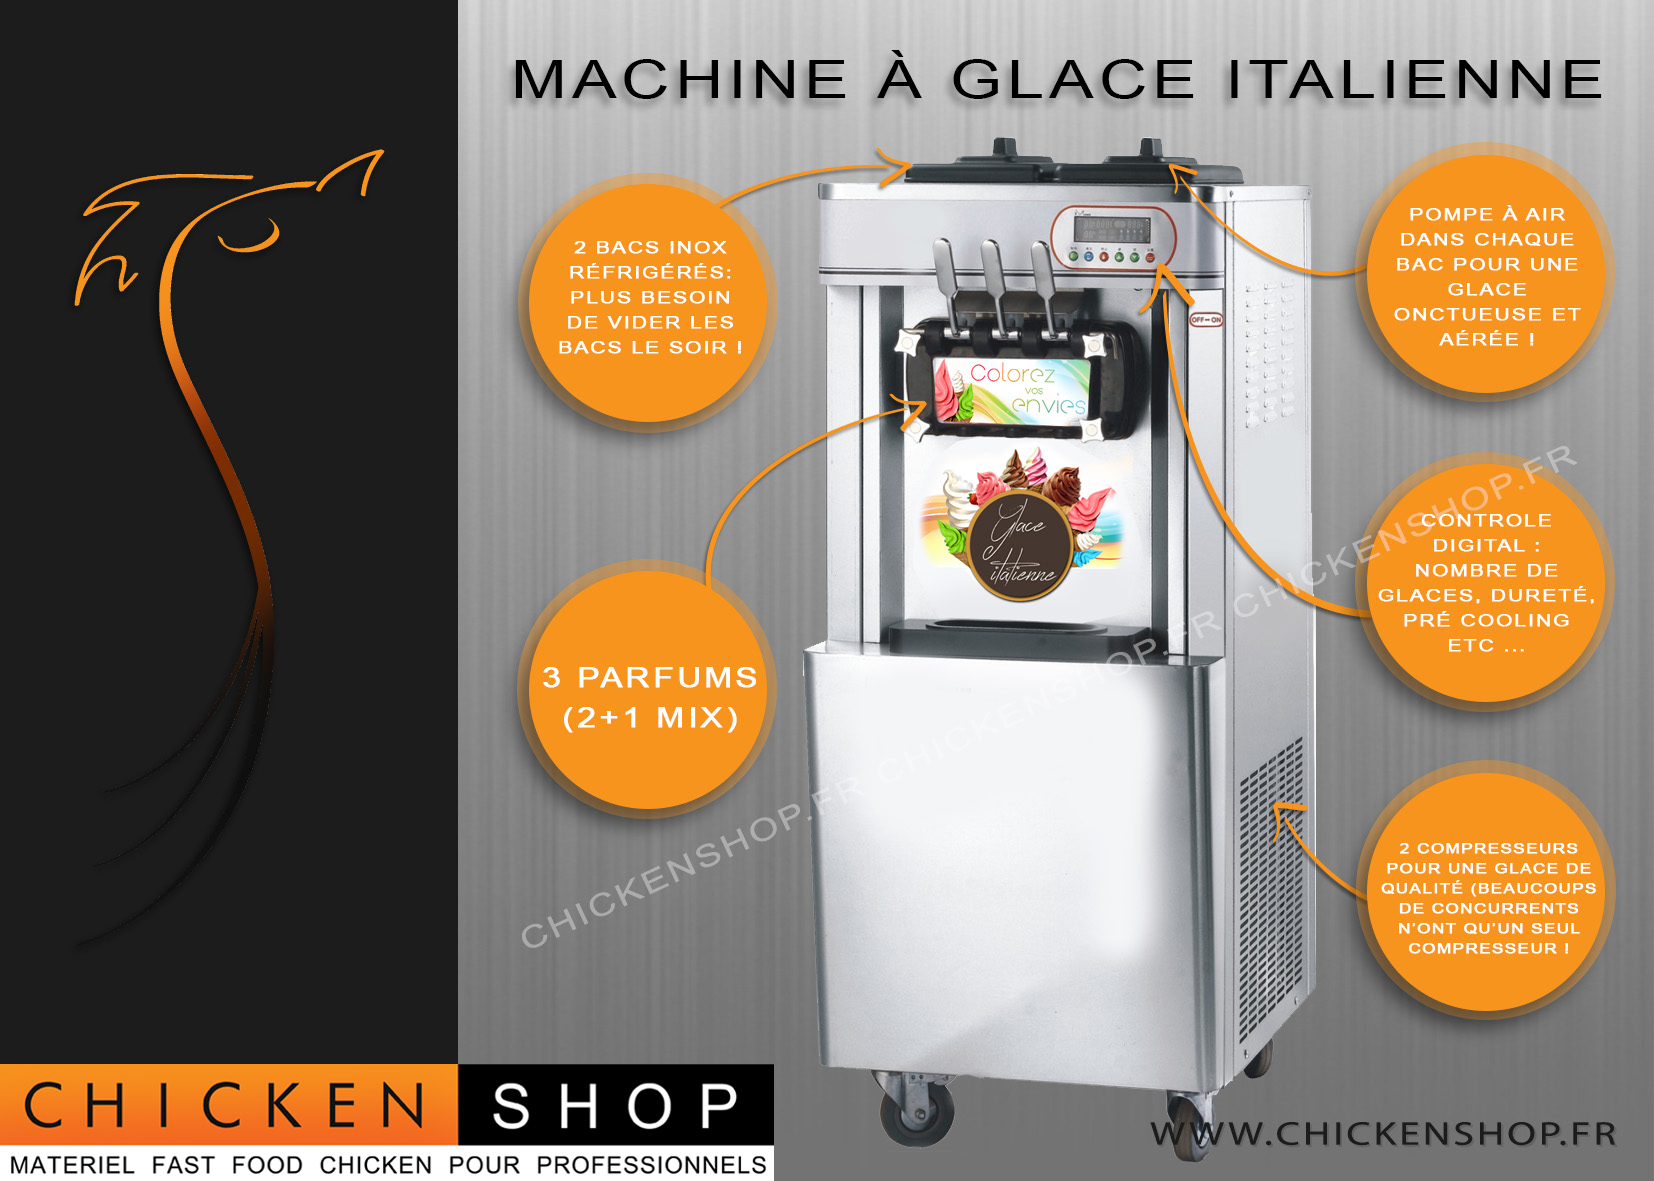 Machine a glaces Italienne 3 parfums